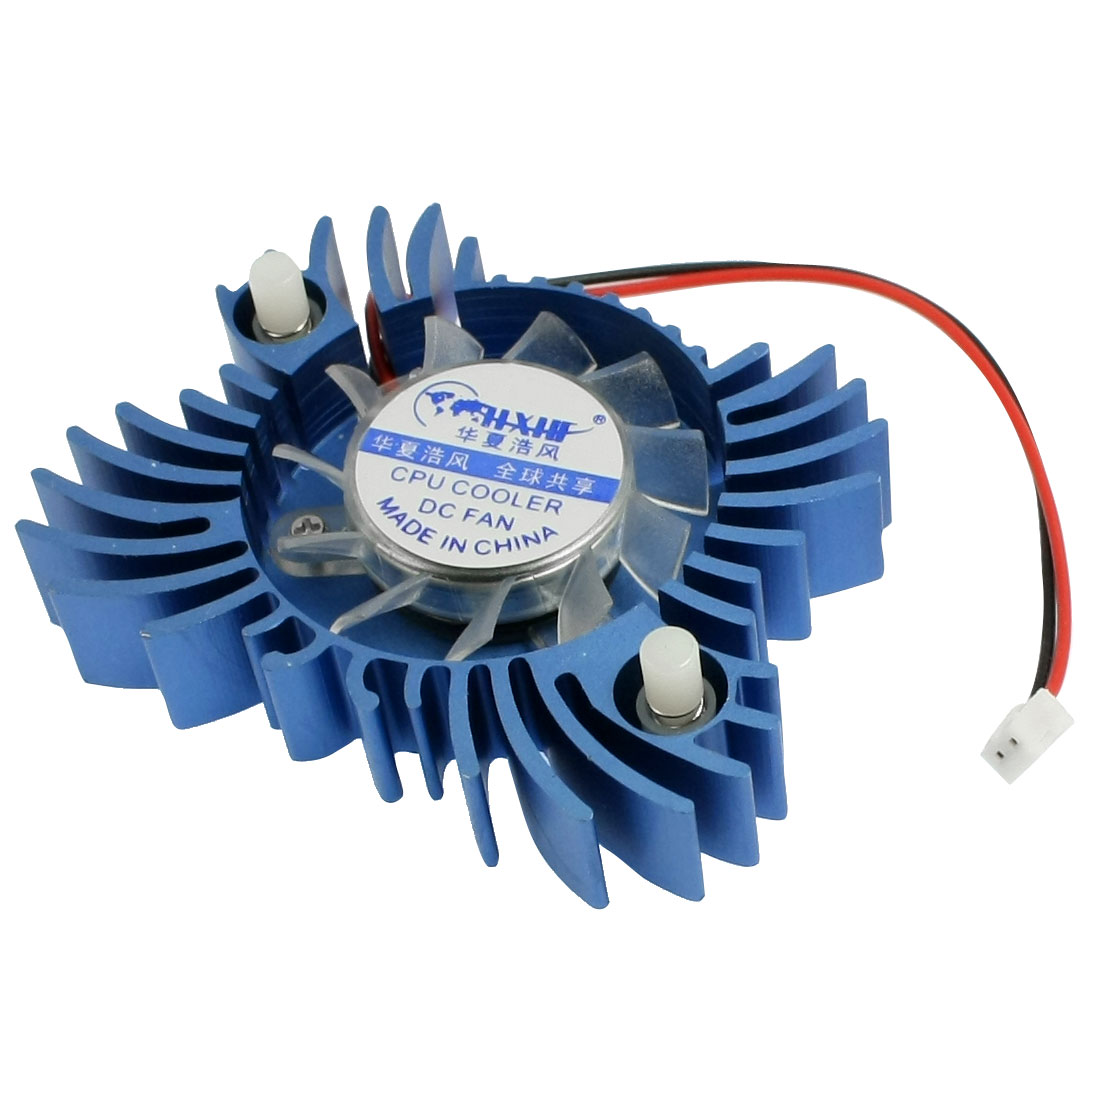 Buterfly Shape Connector CPU Cooler DC Fan for PC Computer 2 P